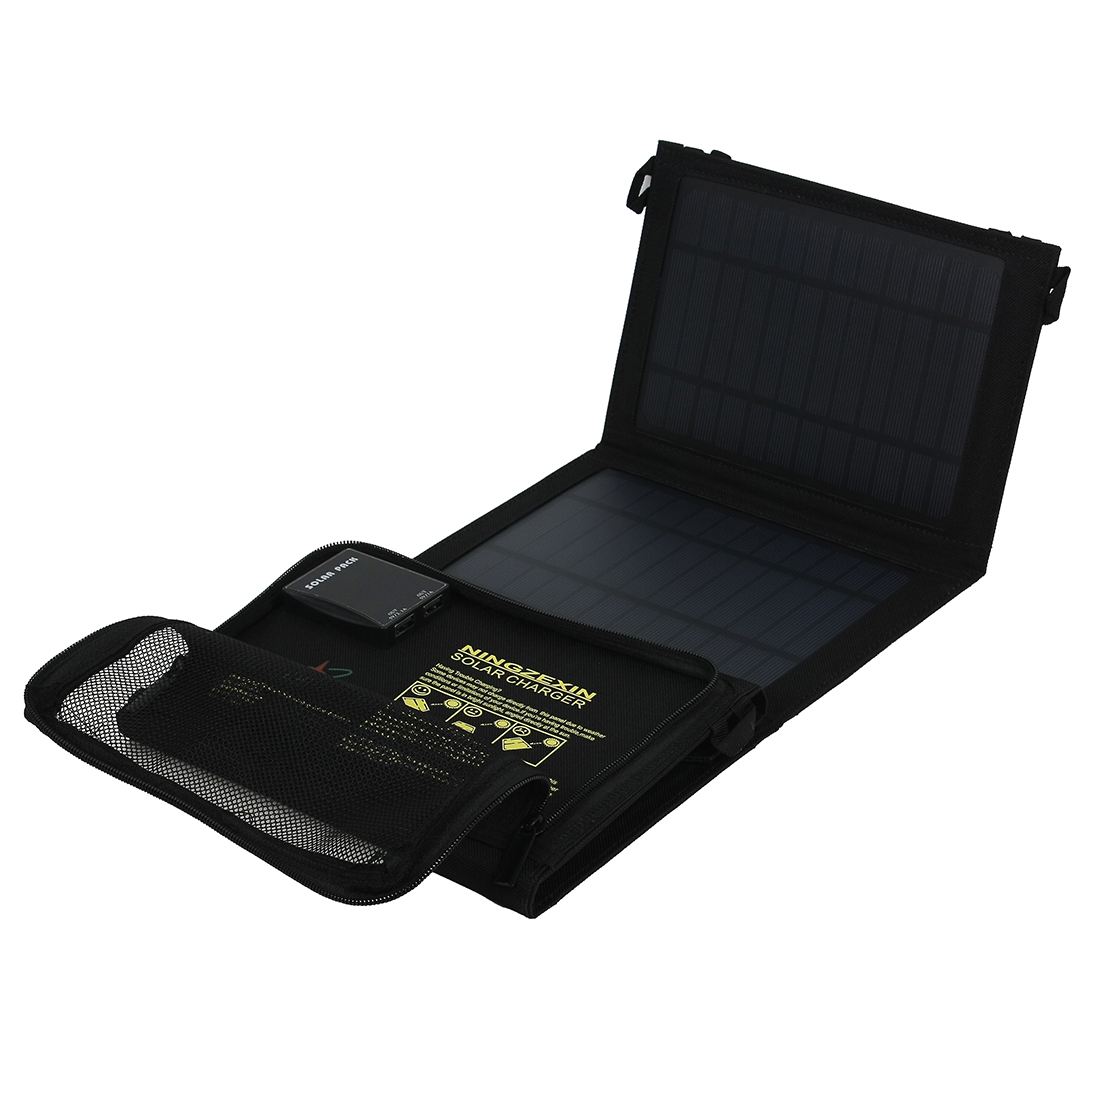 14W One Ports USB Foldable Solar Panel Charger for Smart Phone Portable Pad More Black